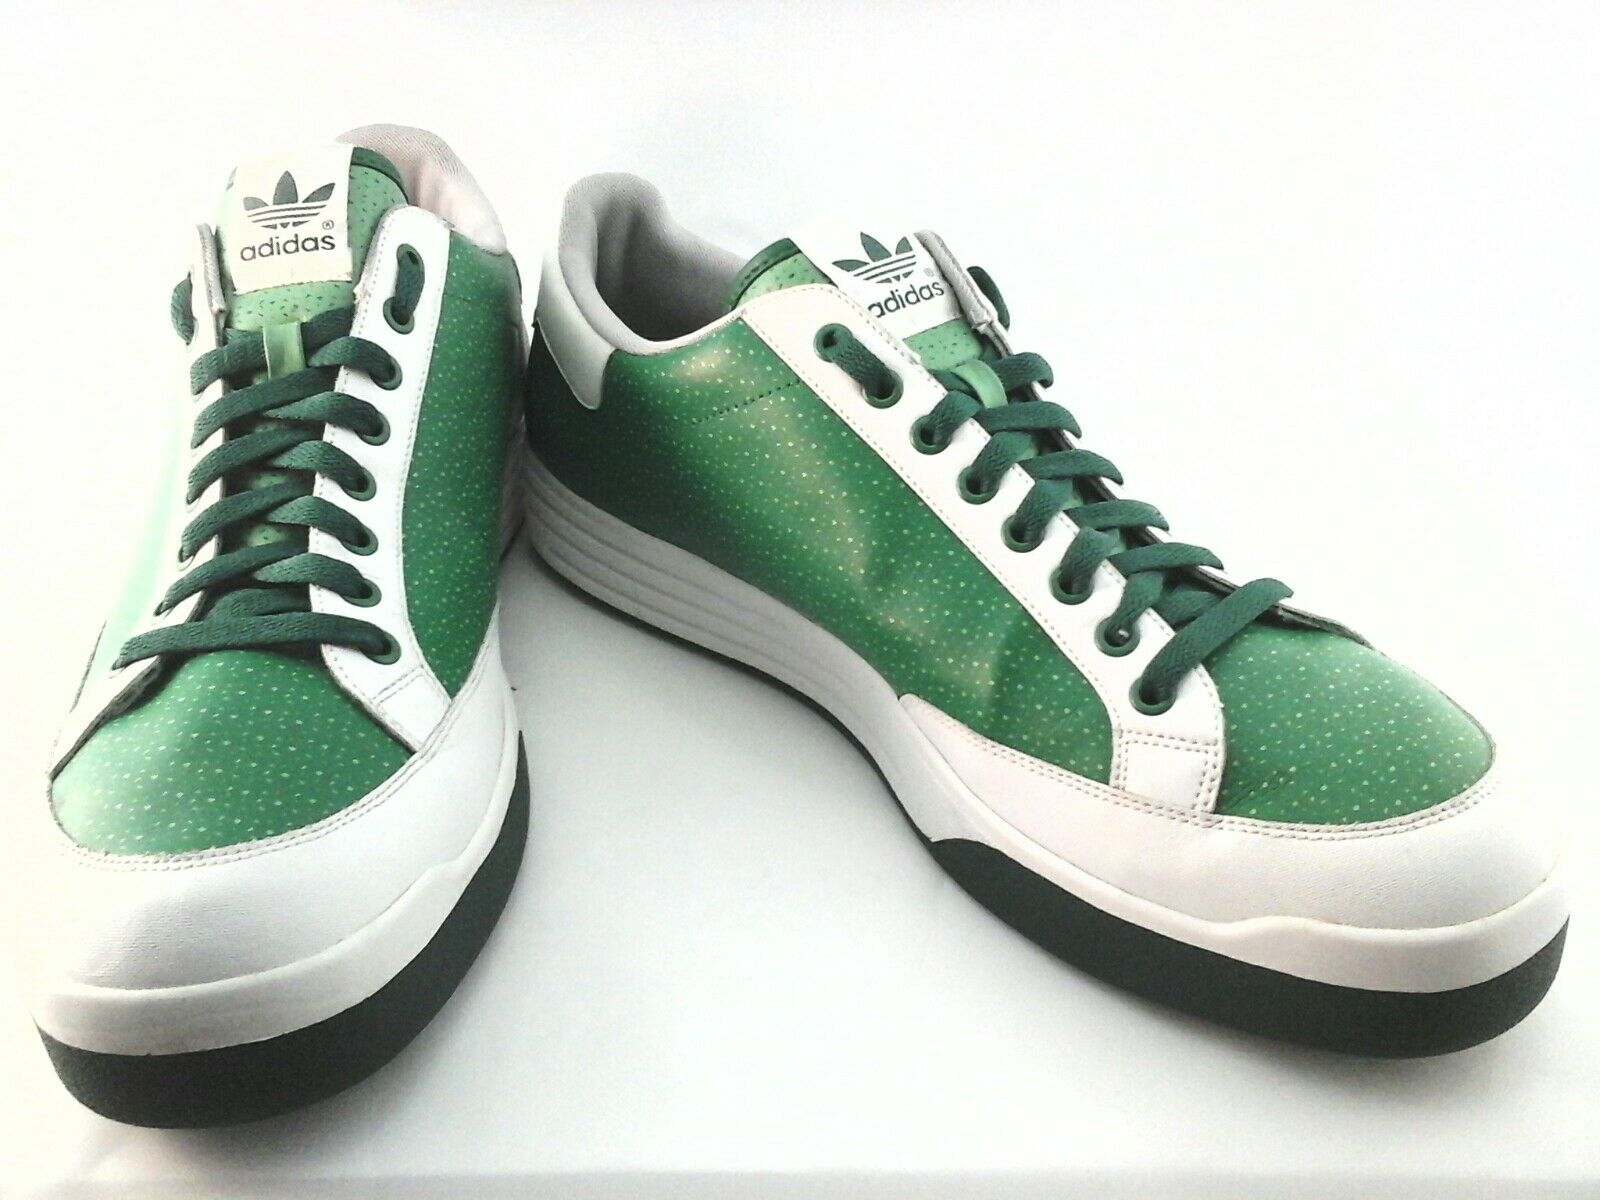 Adidas Rod Laver Mens 2008 Green White Sneakers Shoes US 15 /3 EUC  RARE